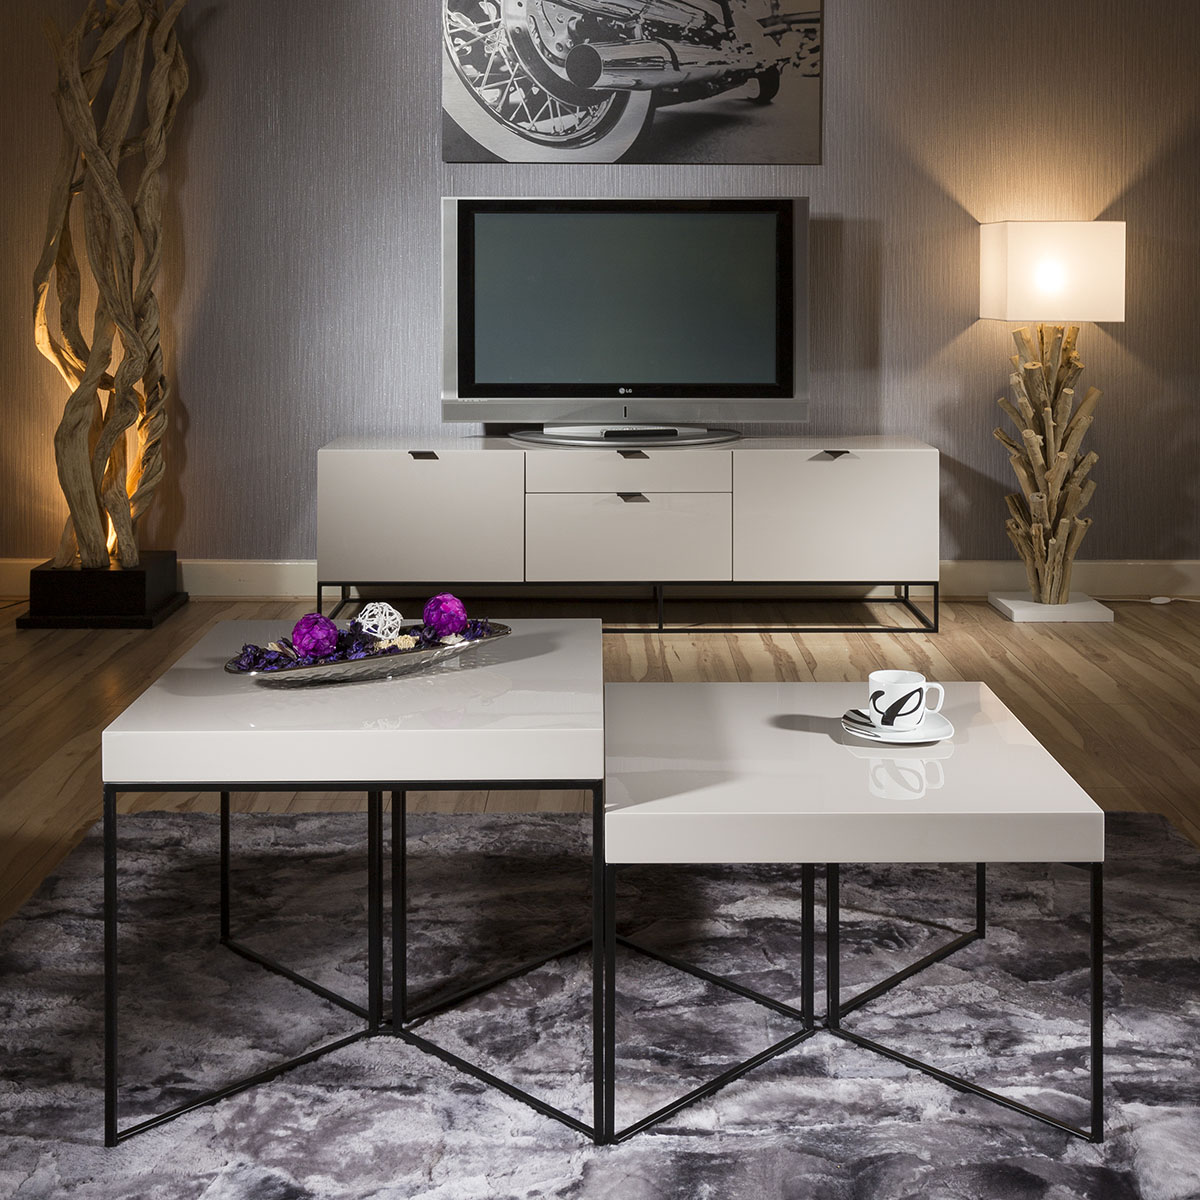 Quatropi Modern Square Coffee Table Combination Grey High